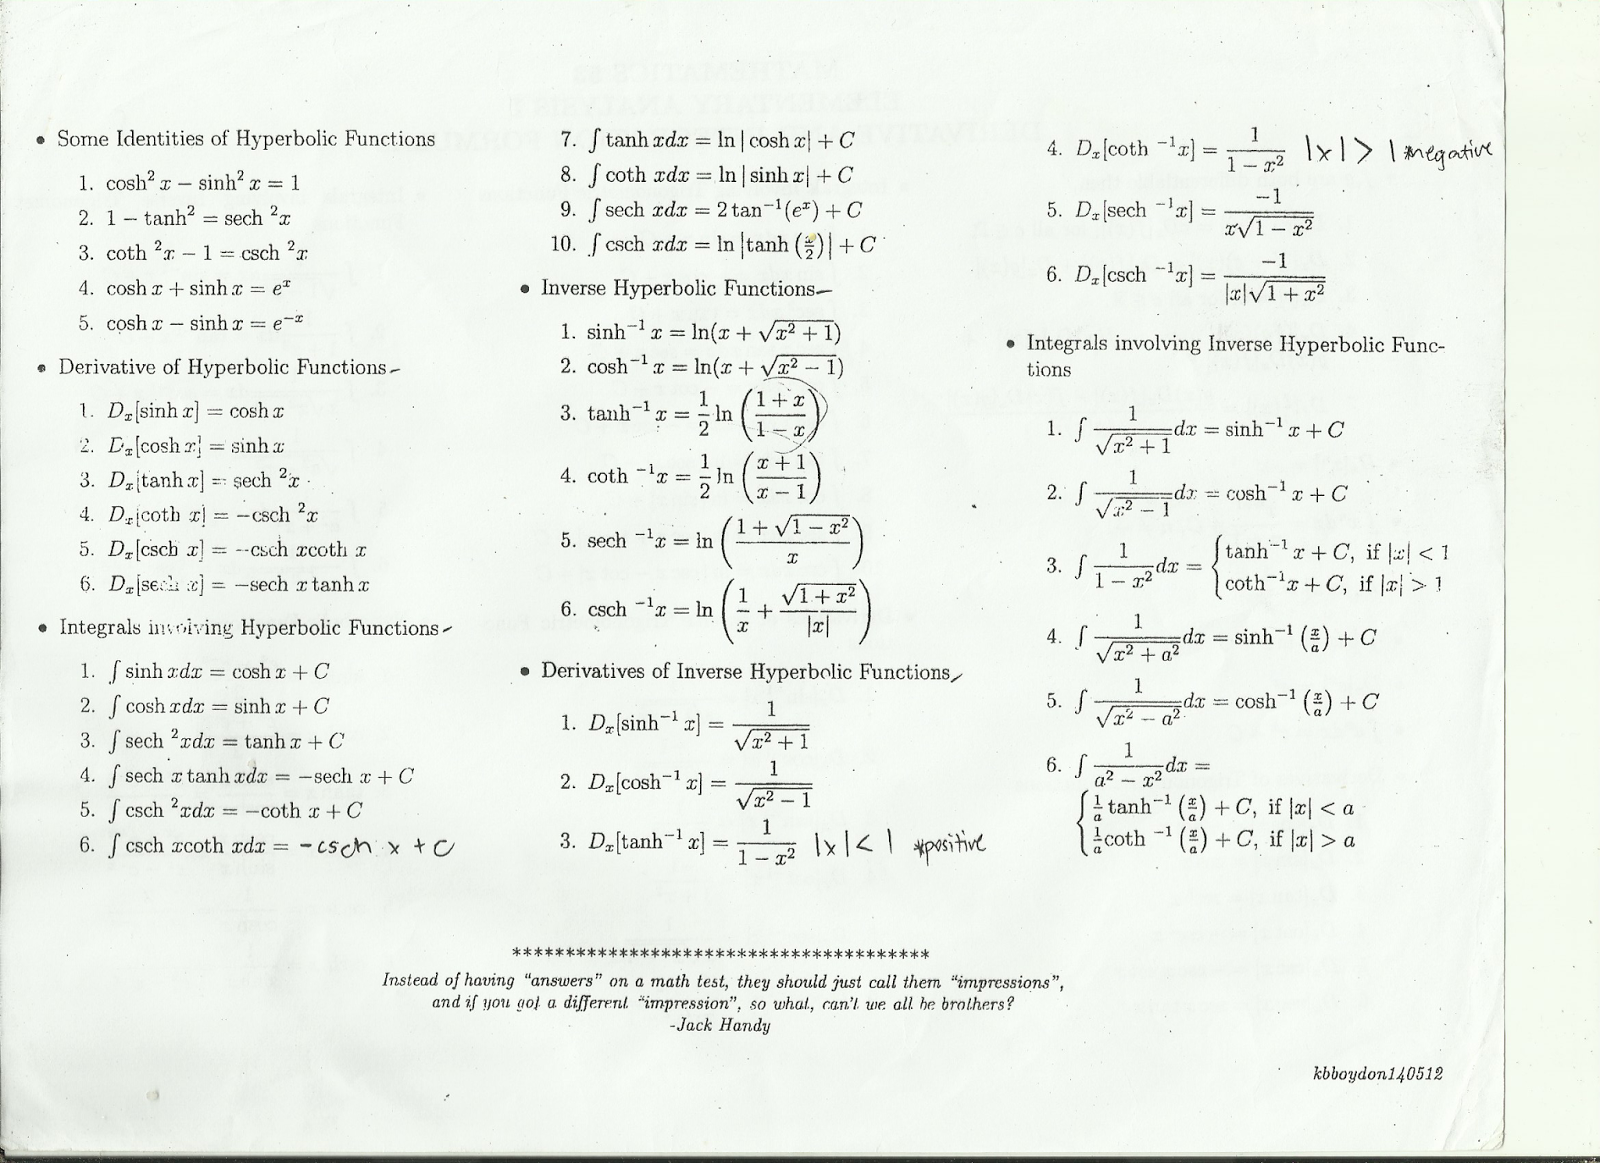 derivative and calculus book Calculus by gilbert strang - mit opencourseware.